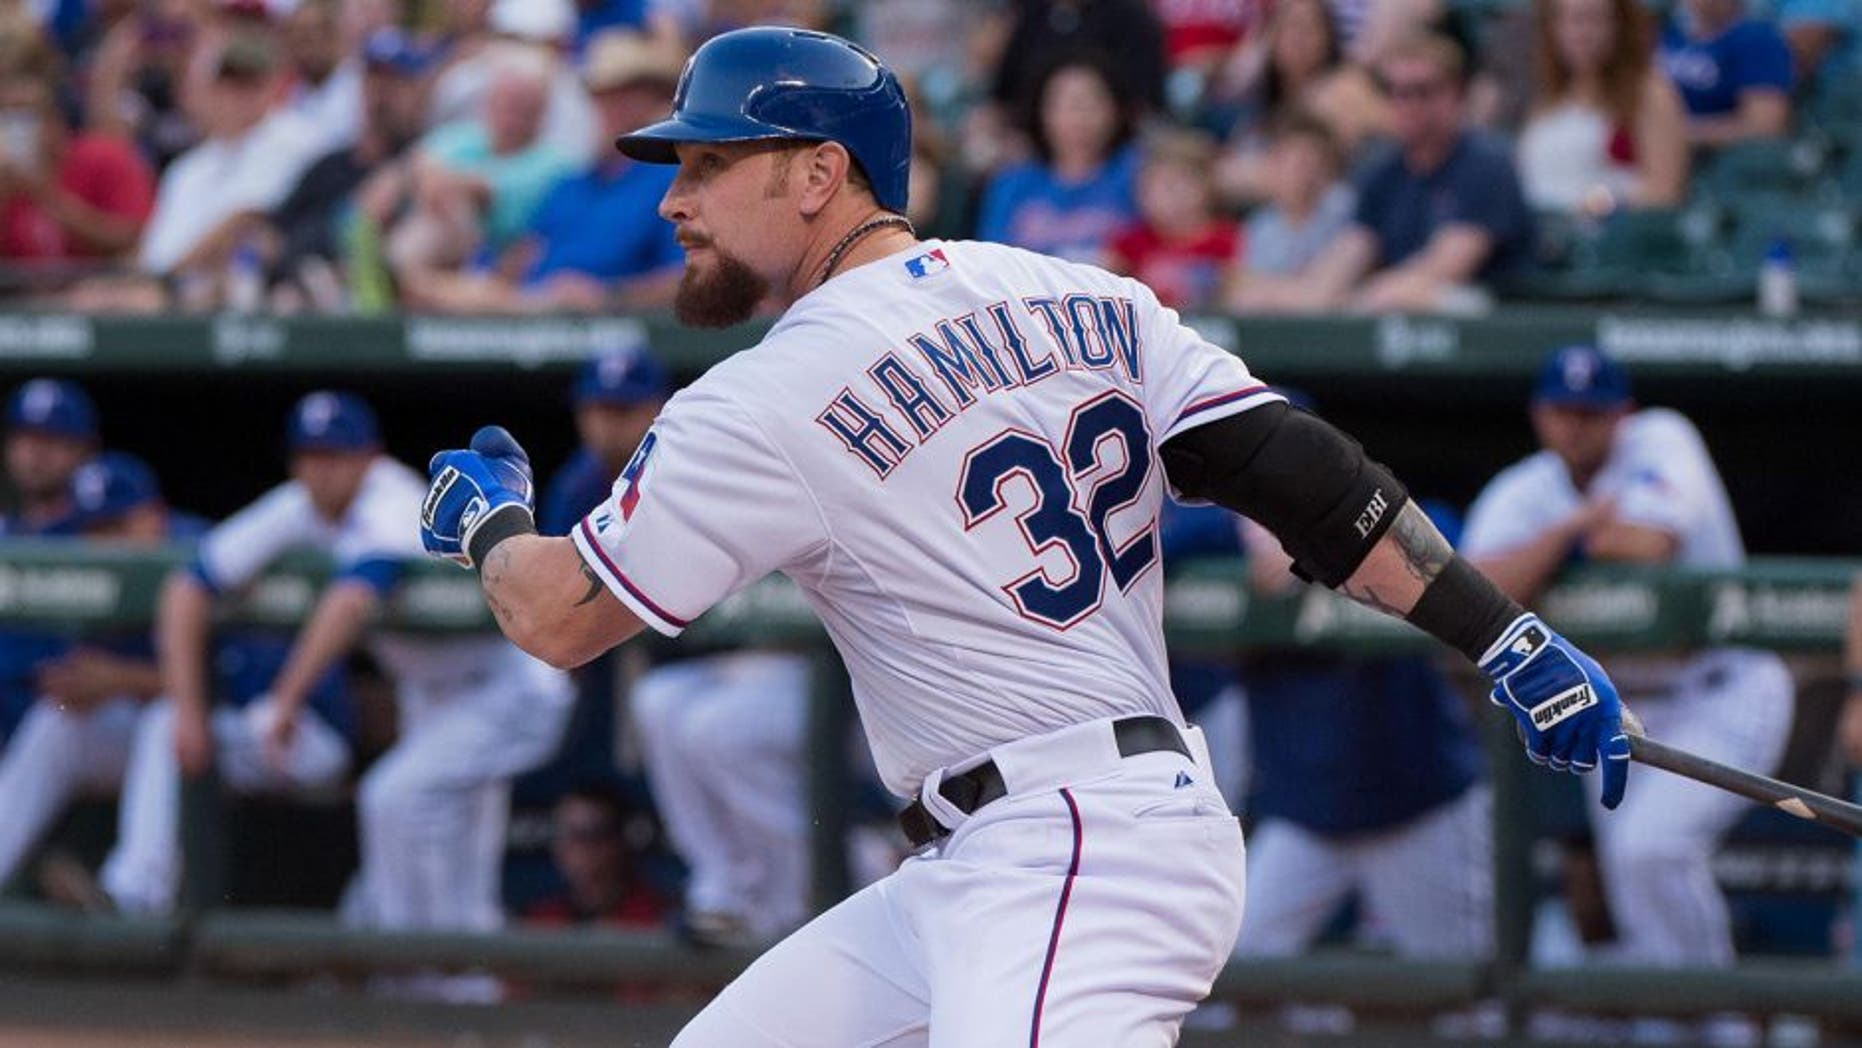 Aug 15, 2015; Arlington, TX, USA; Texas Rangers left fielder Josh Hamilton (32) bats against the Tampa Bay Rays during the game at Globe Life Park in Arlington. The Rangers defeated the Rays 12-4. Mandatory Credit: Jerome Miron-USA TODAY Sports